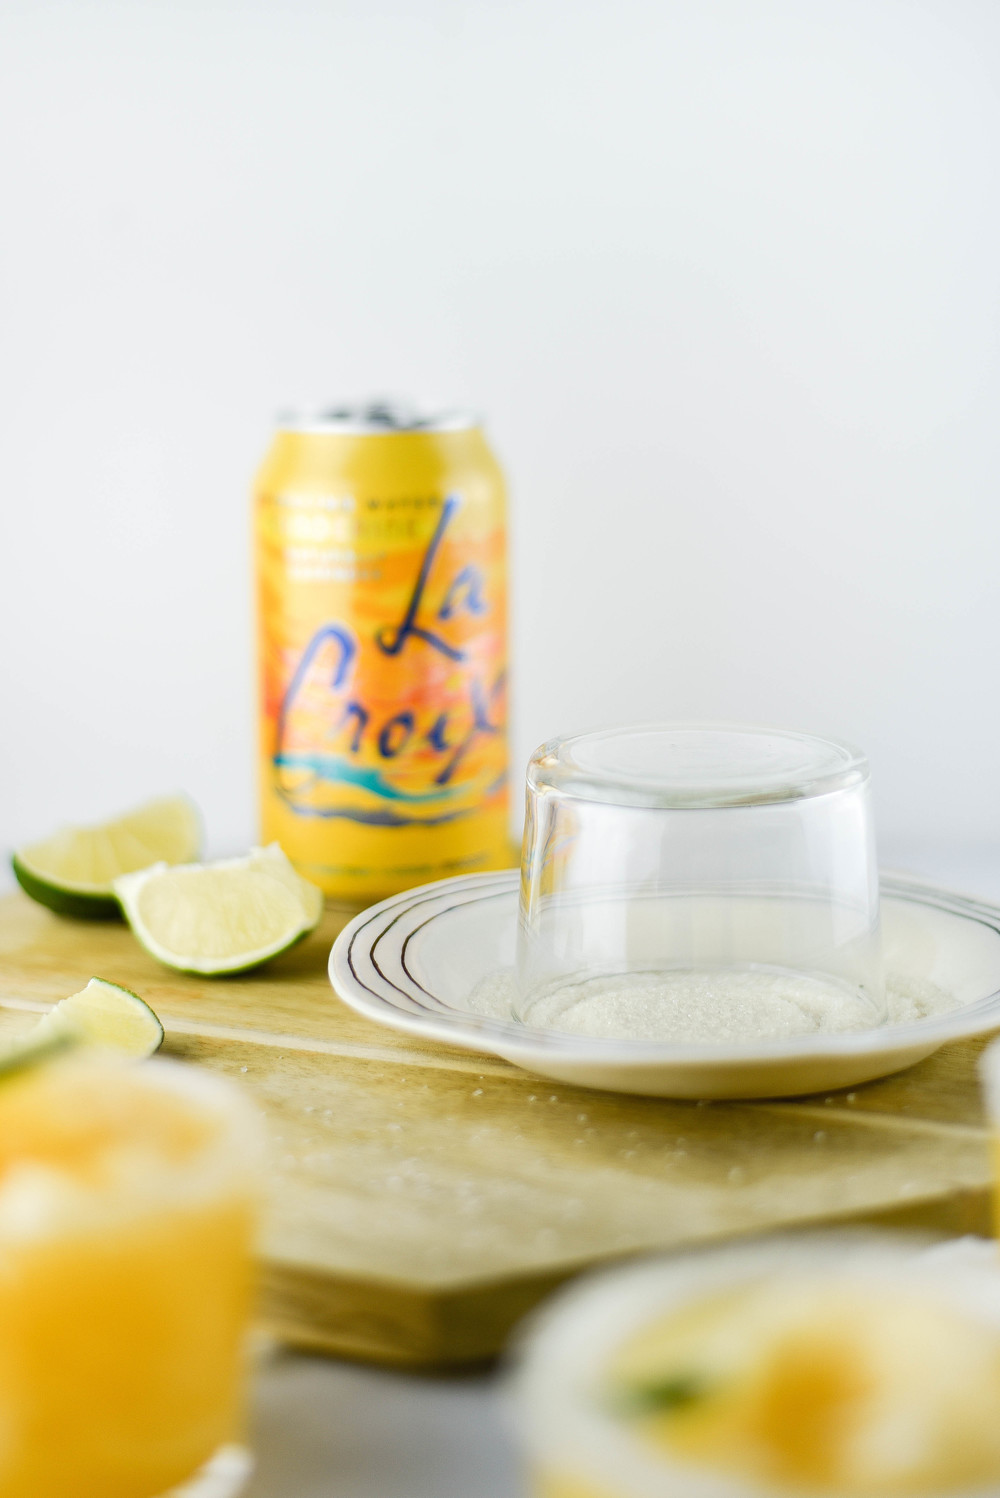 Blended Tangerine LaCroix drink recipe! | boxwoodavenue.com